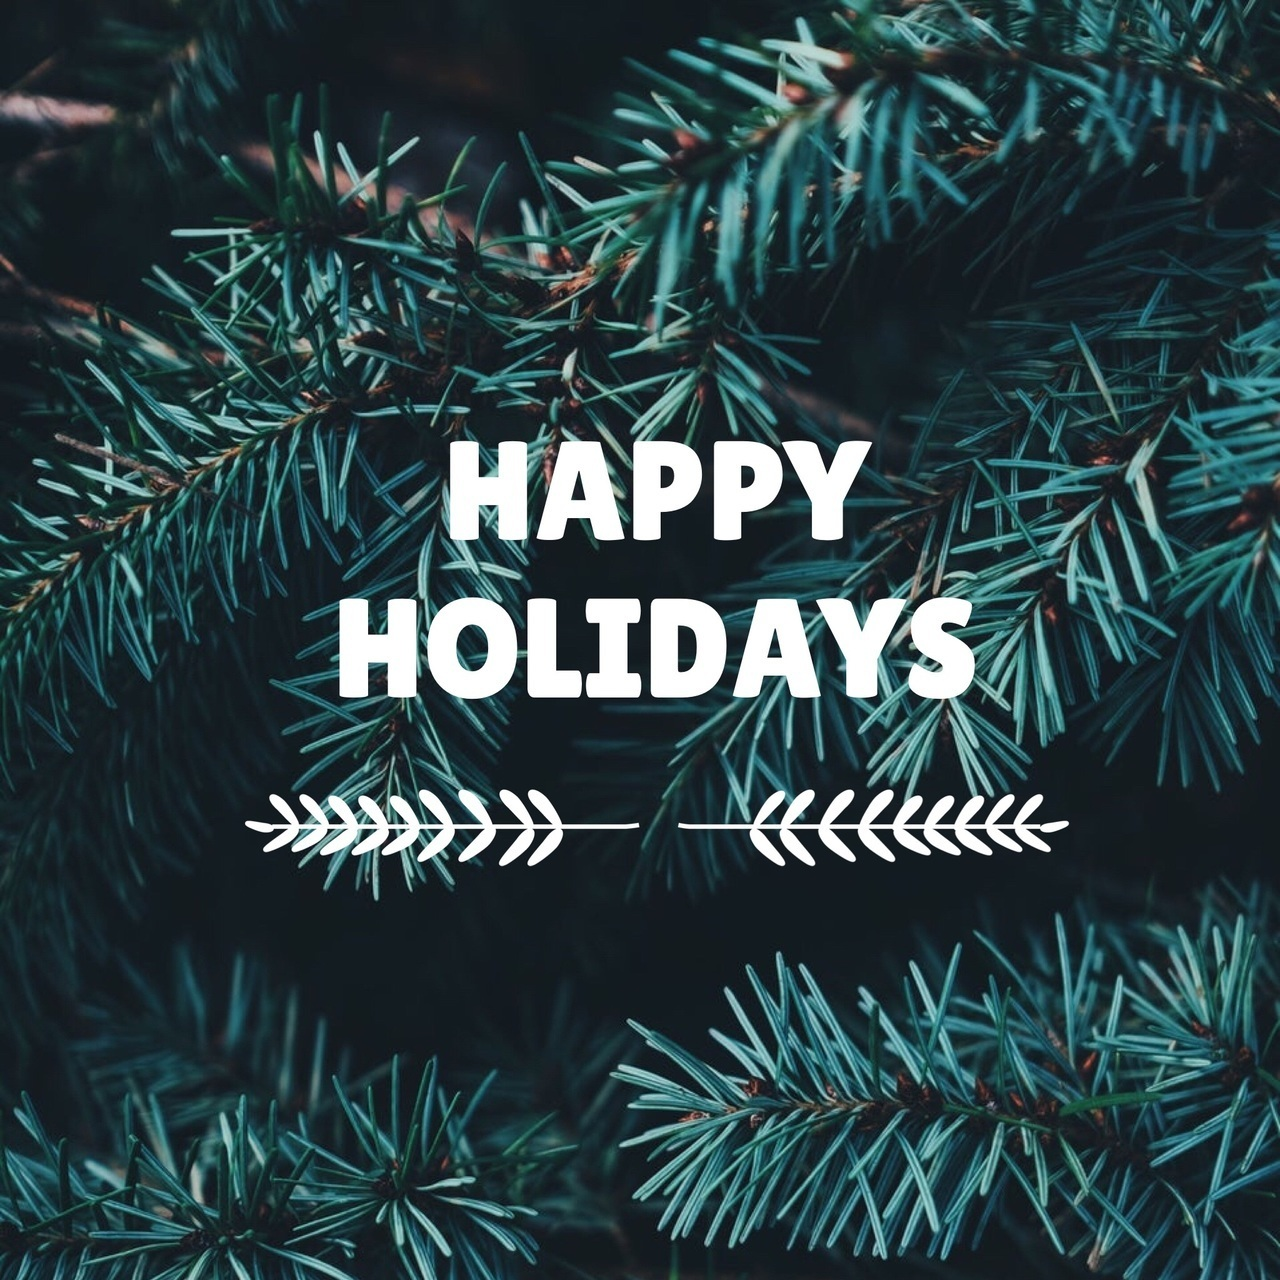 happy holidays dp images